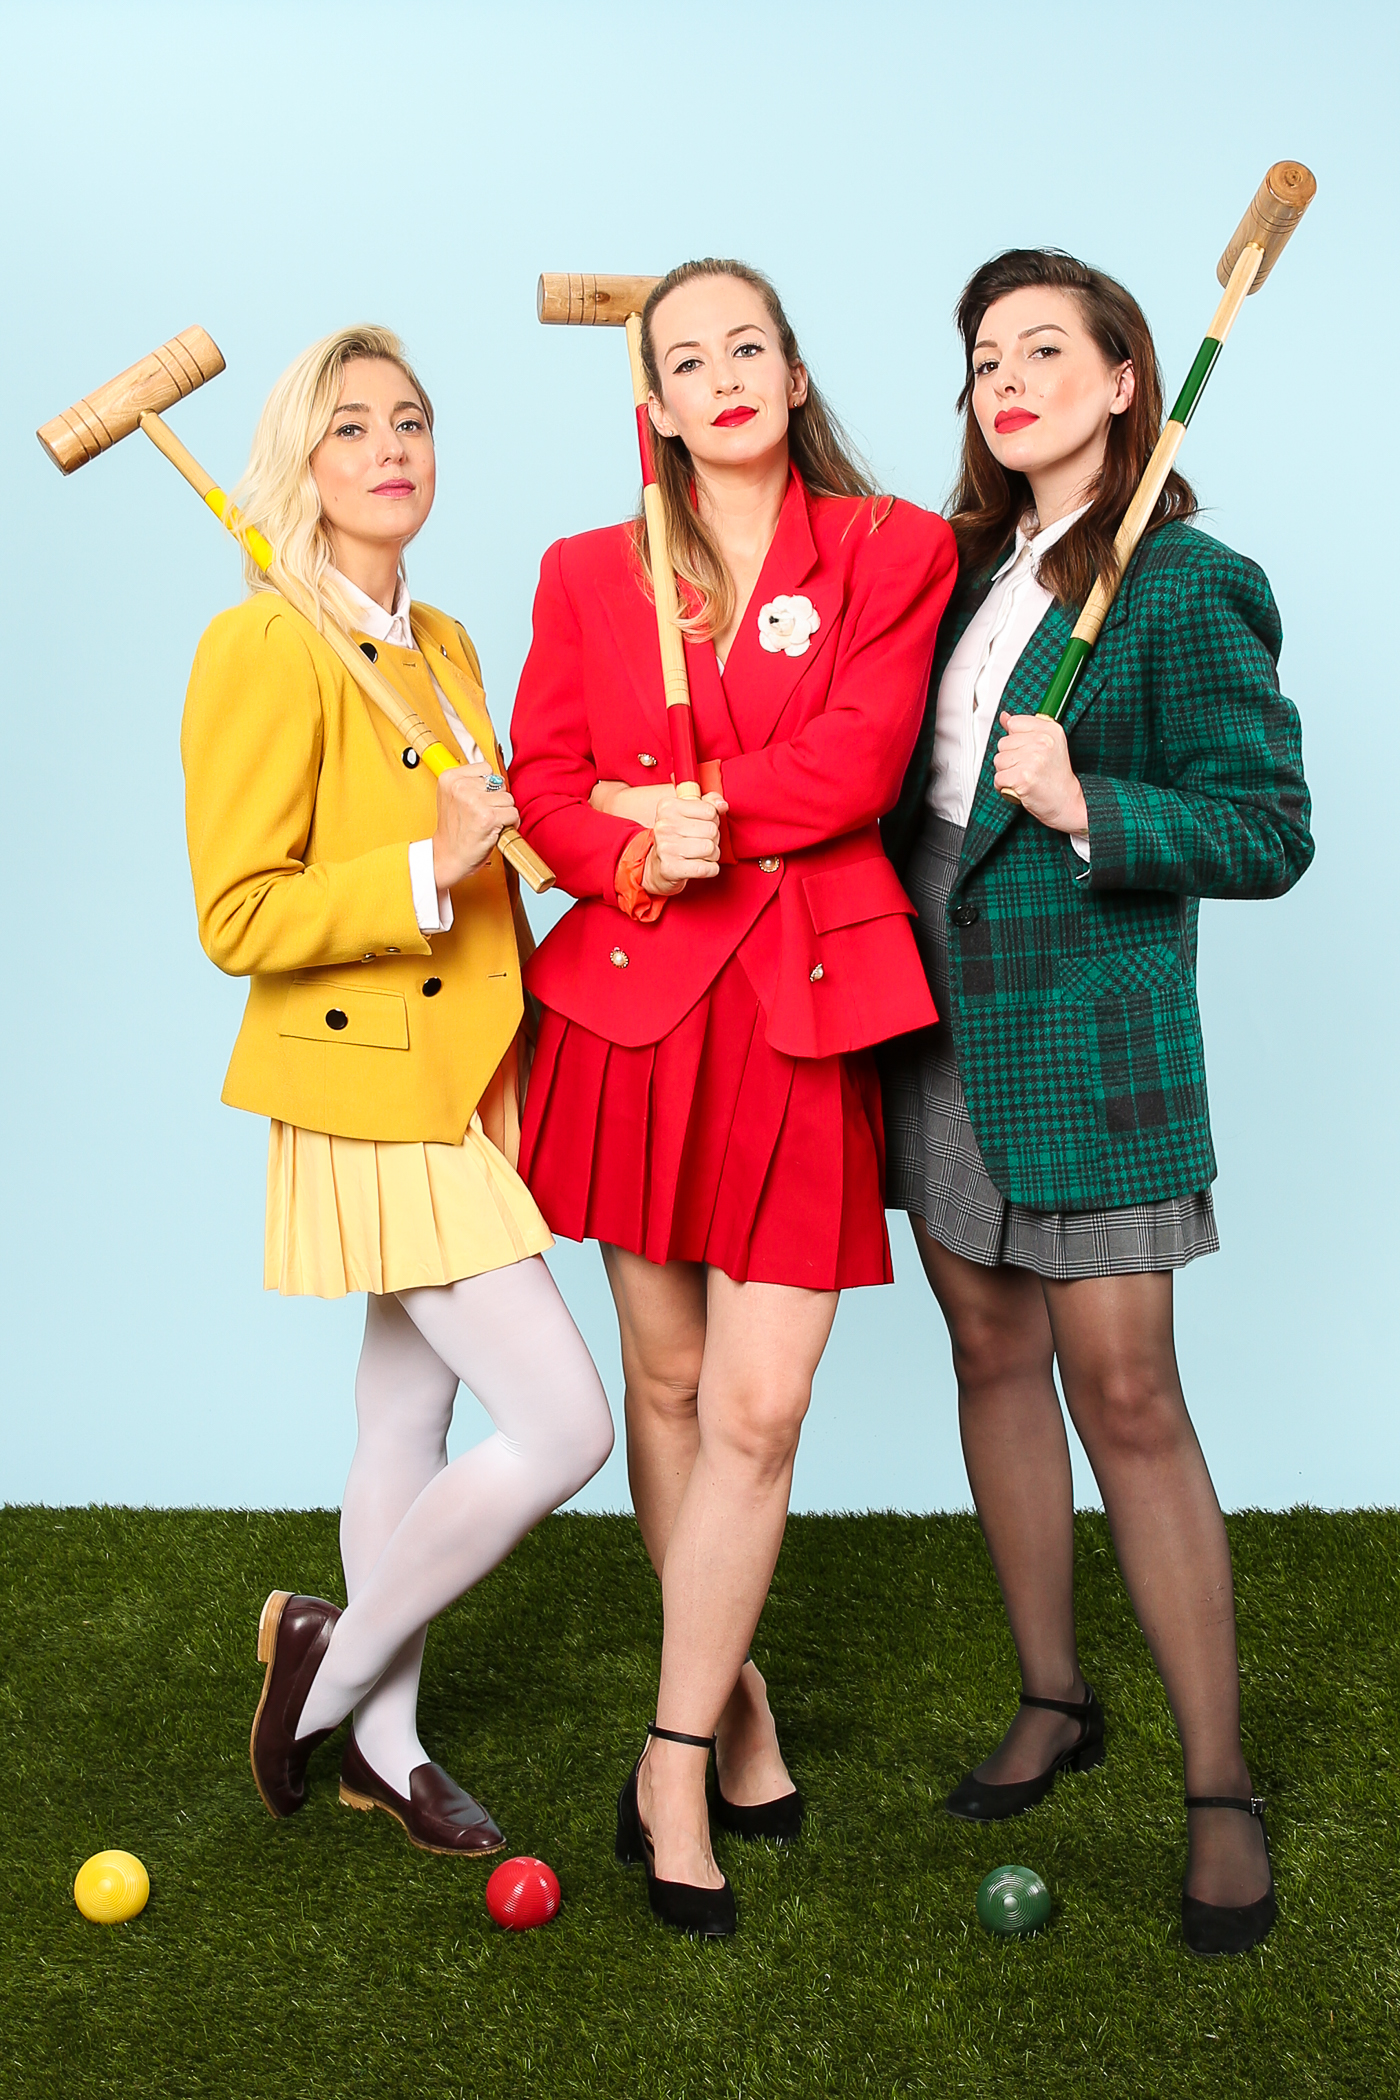 Heathers group costume: My Style Pill, Brooklyn Blonde, and Keiko Lynn